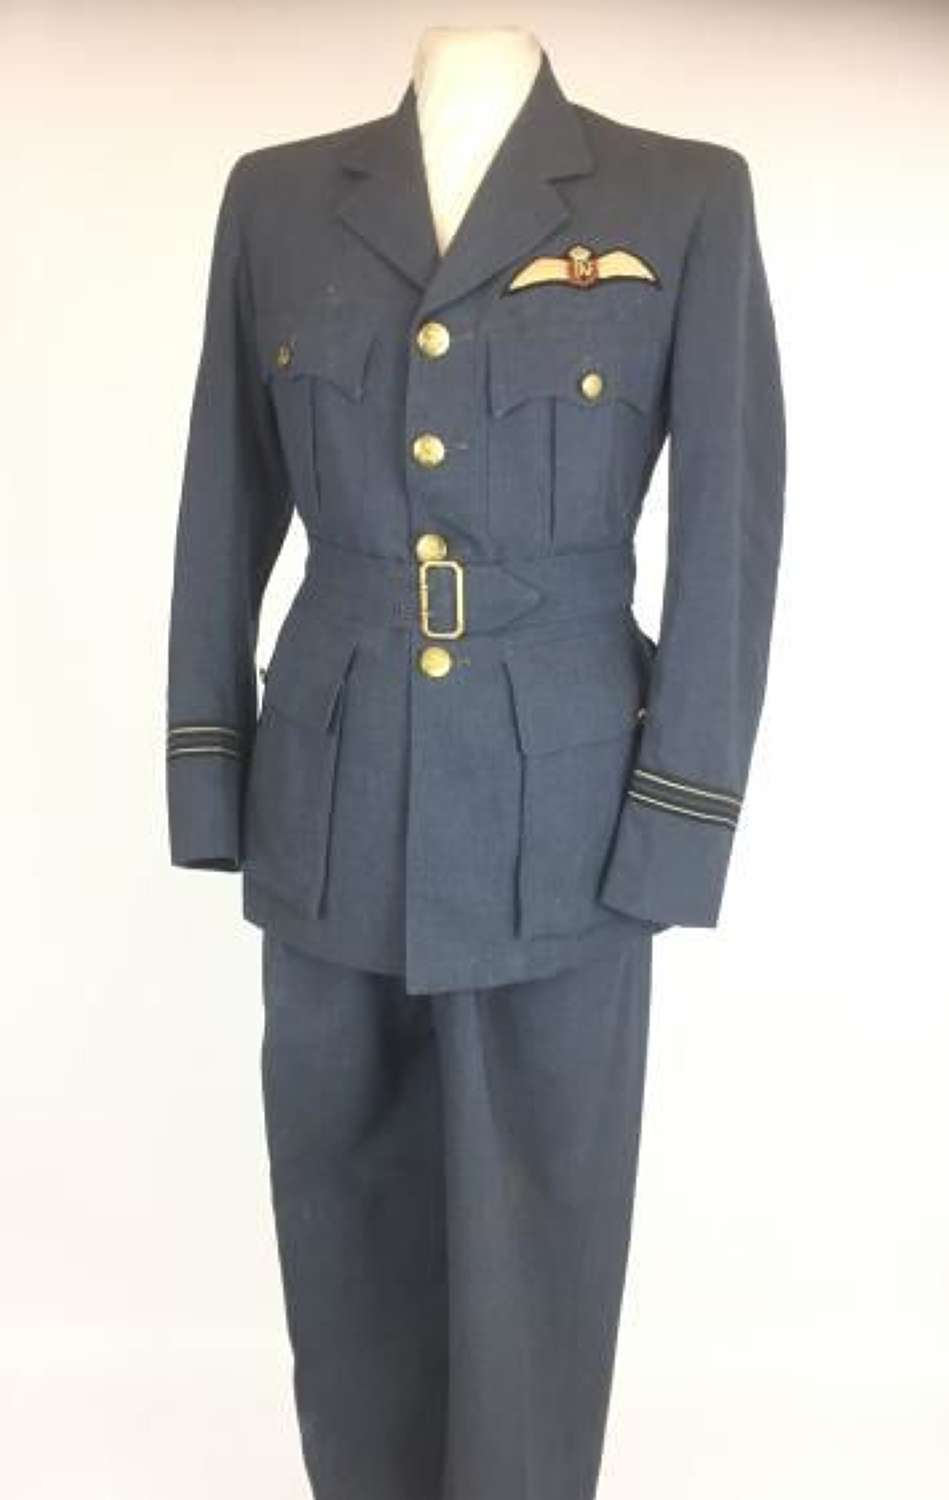 Original RAF Officers Service Dress Attributed to a Typhoon Pilot of 263 Squadron